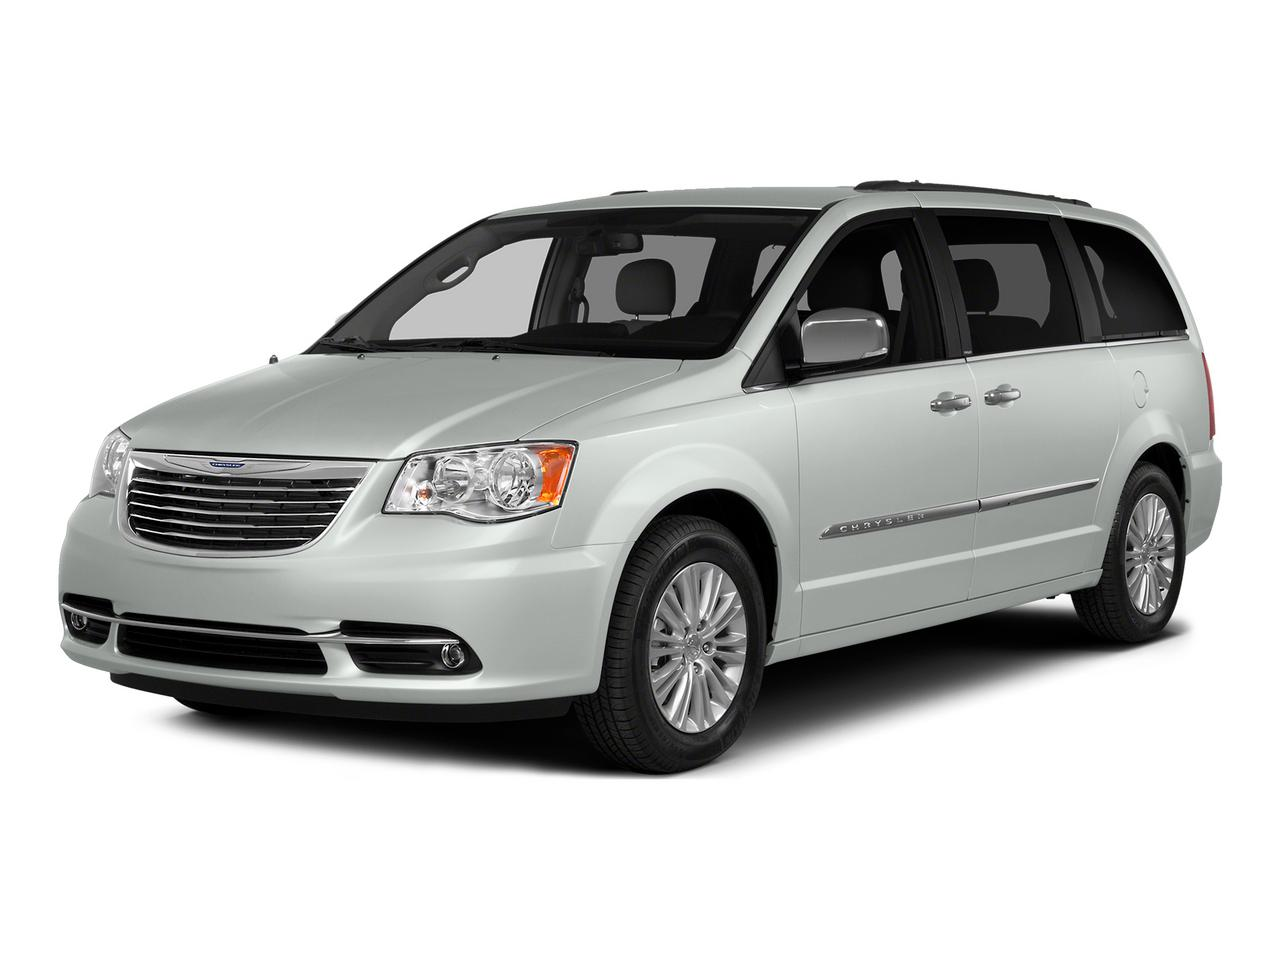 2015 Chrysler Town & Country Vehicle Photo in Portland, OR 97225